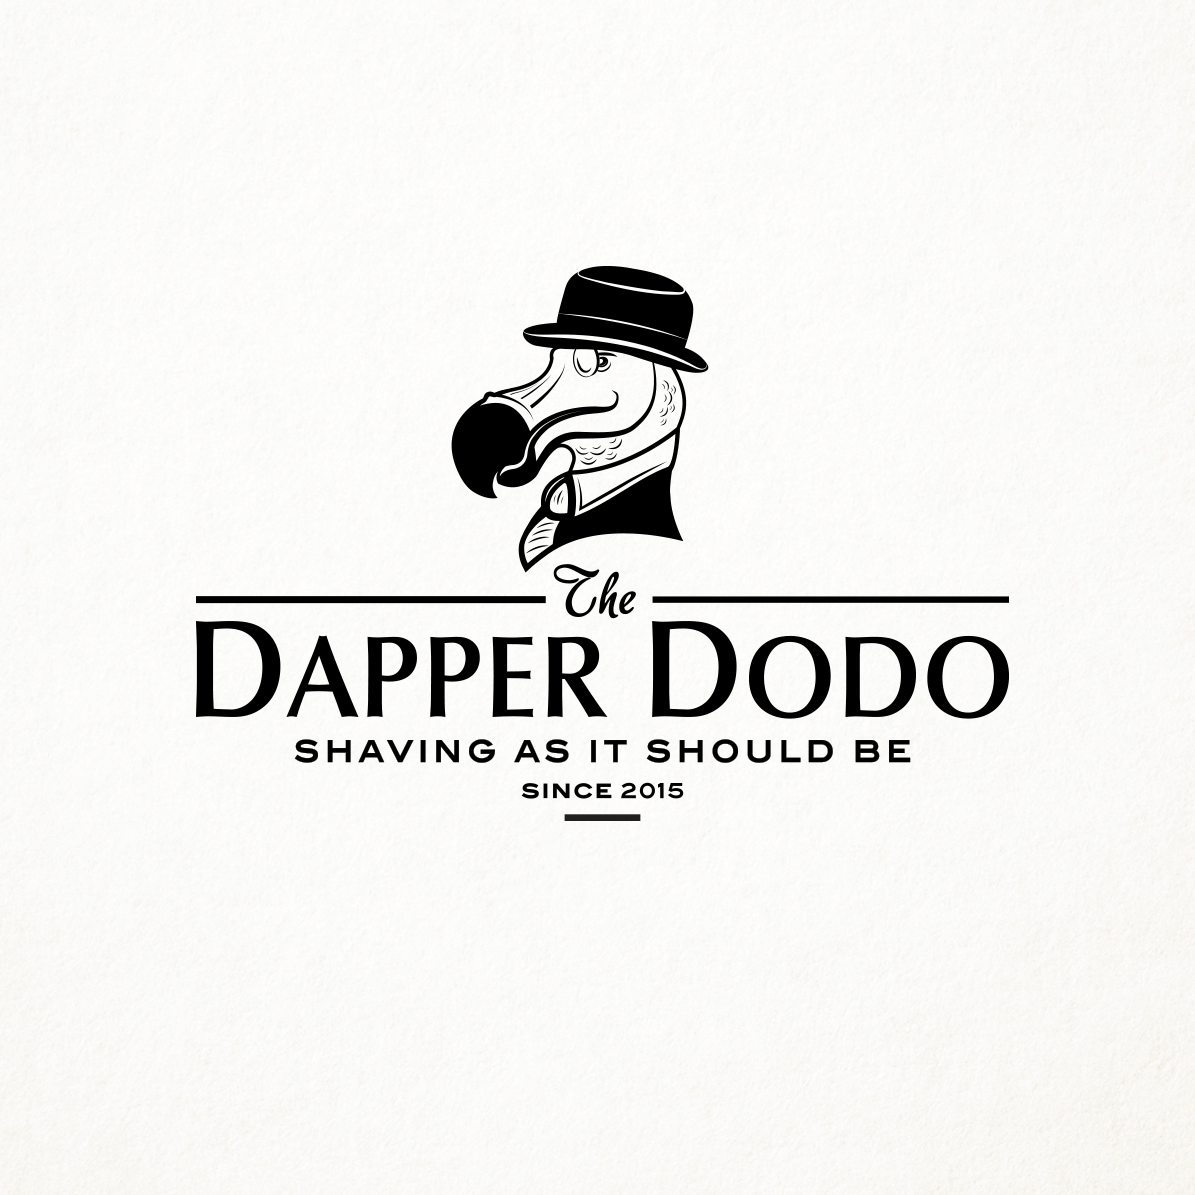 The Dapper Dodo logo